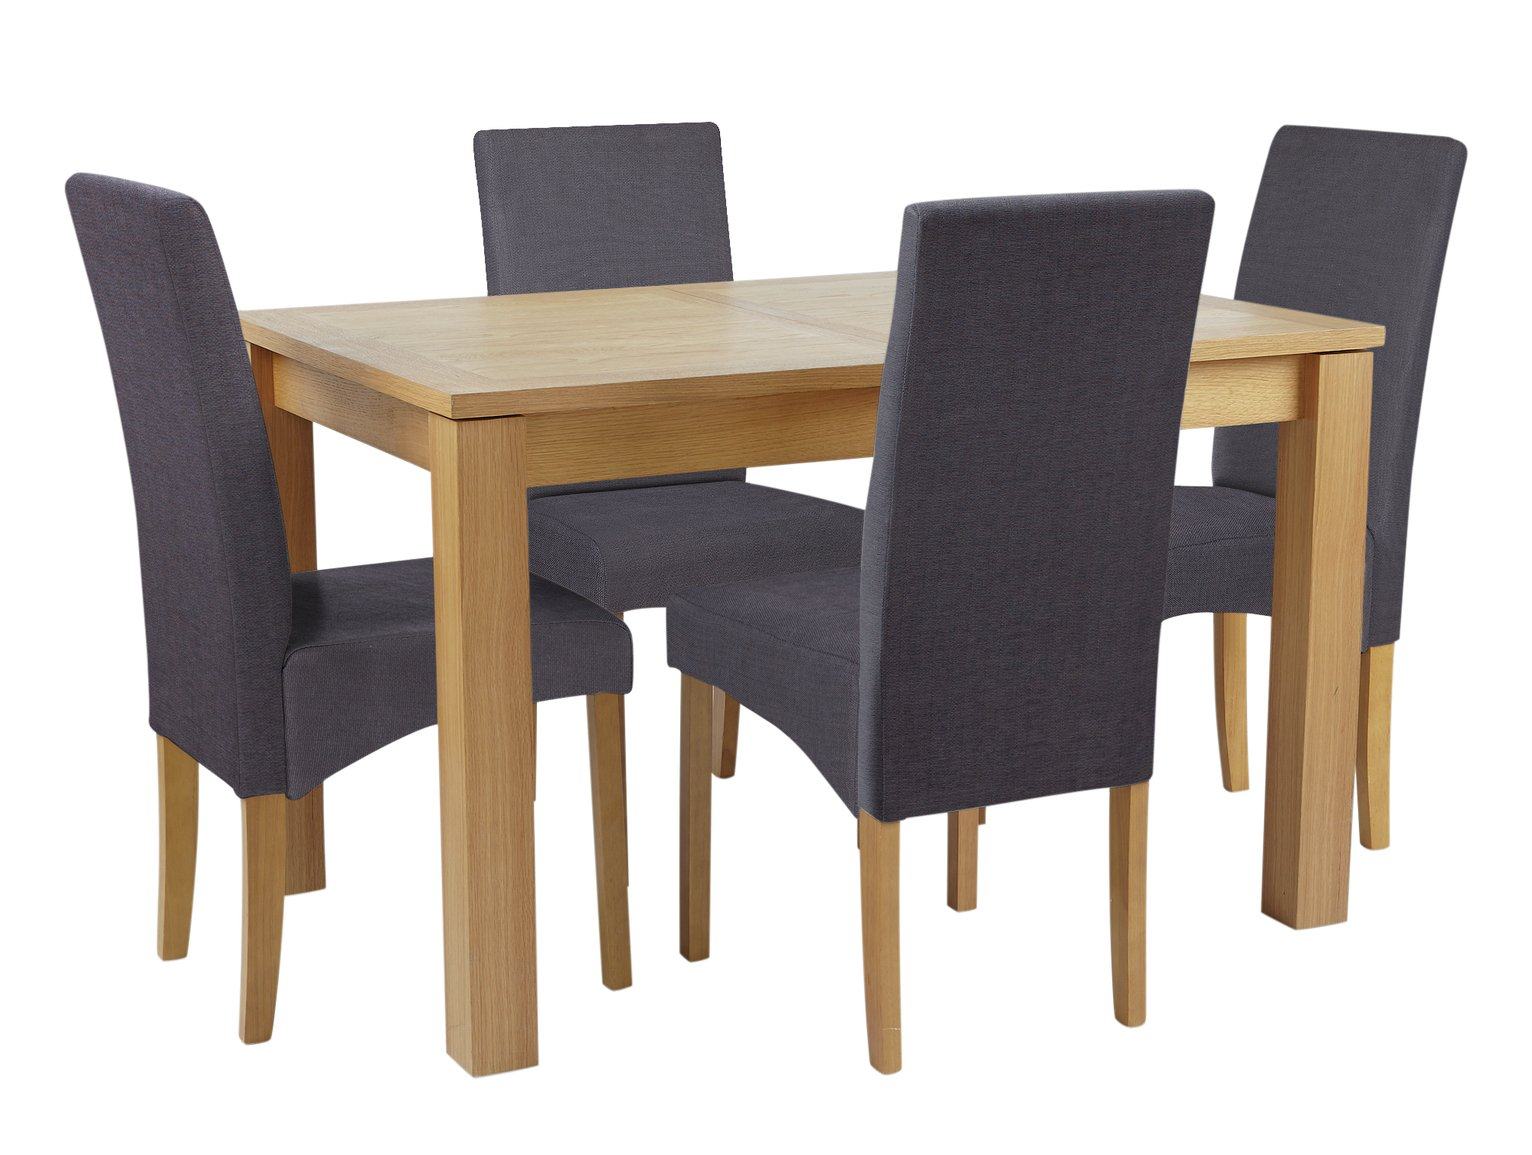 Collection Swanbourne Ext Oak Vnr Table & 4 Chairs -Charcoal